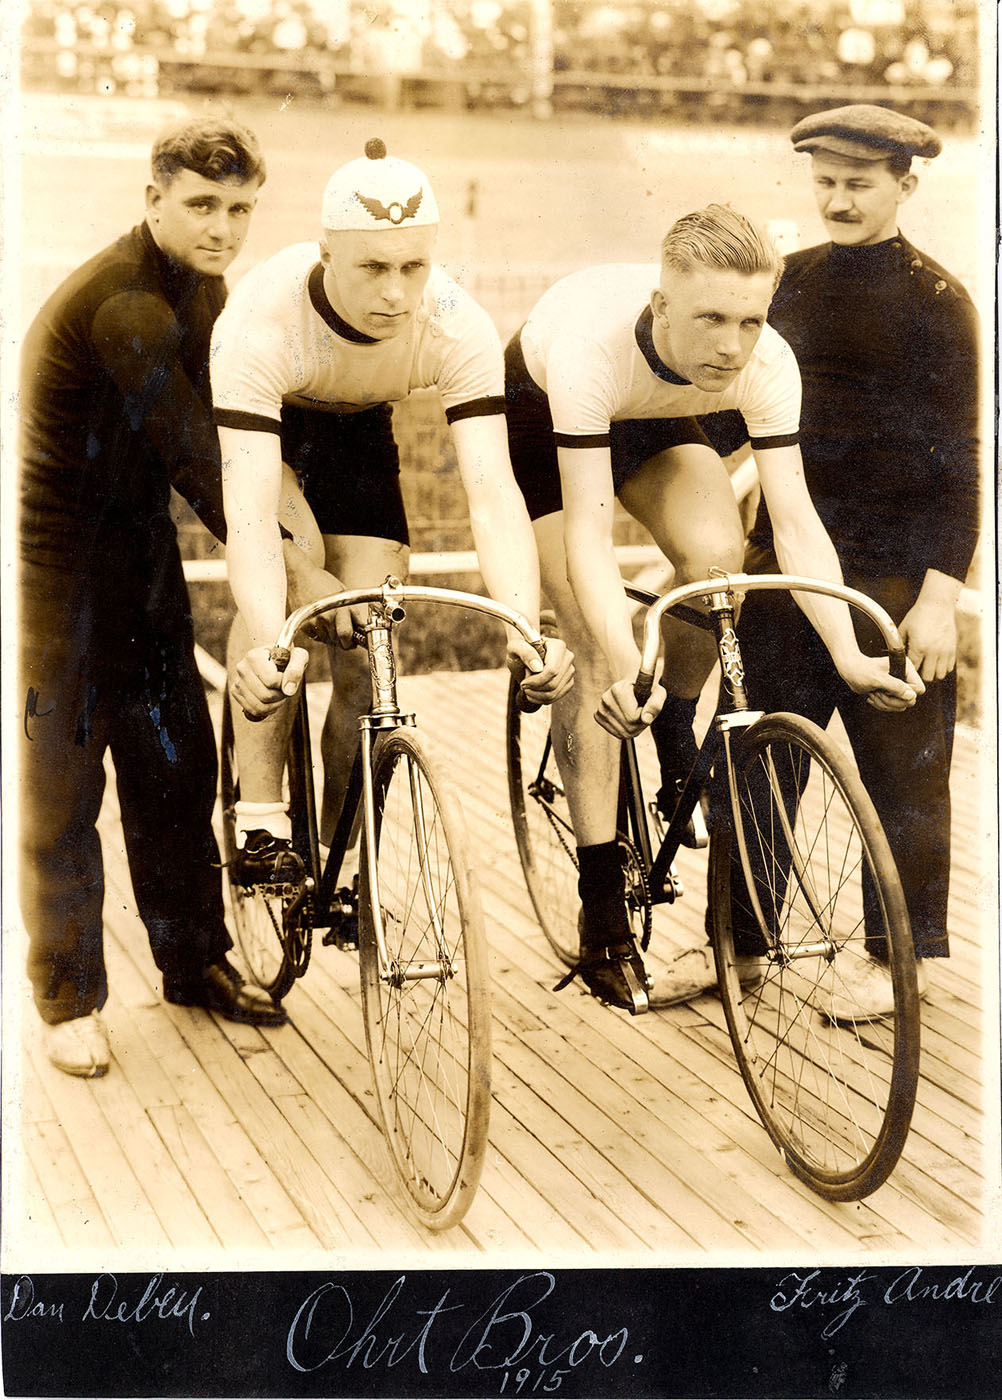 Ohrt brothers 1915 Left to right: Dan Debey, Hans Ohrt (Pierce track bike), Ernie Ohrt (Bastide track bike) and Fritz Andre (Hans Ohrt is wearing the 'Flying O' badge of the Olympic Club) Click on image for larger version showing great cycle detail